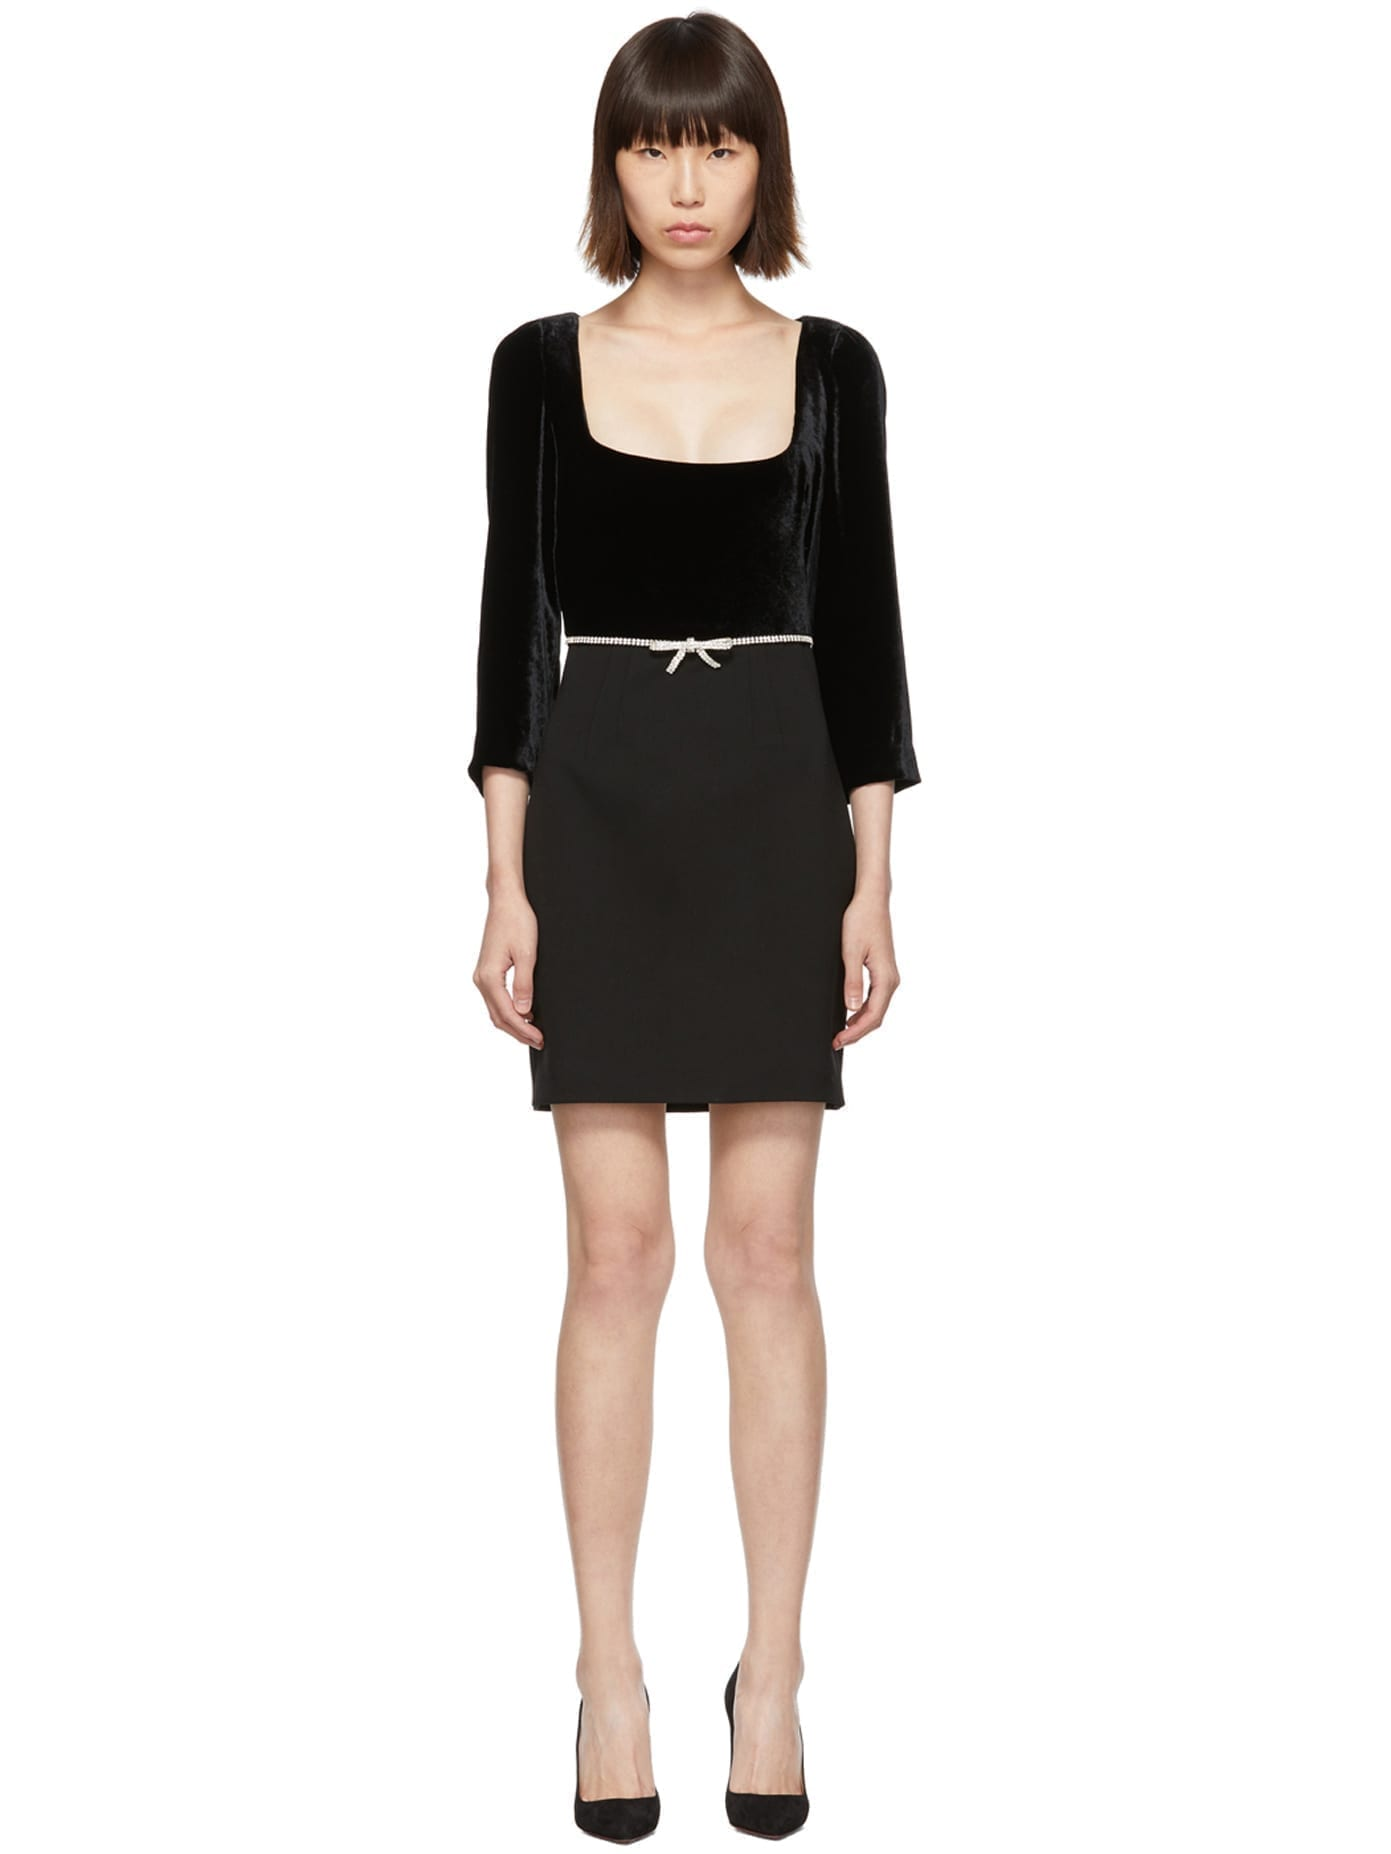 MIU MIU Black Velvet Dress